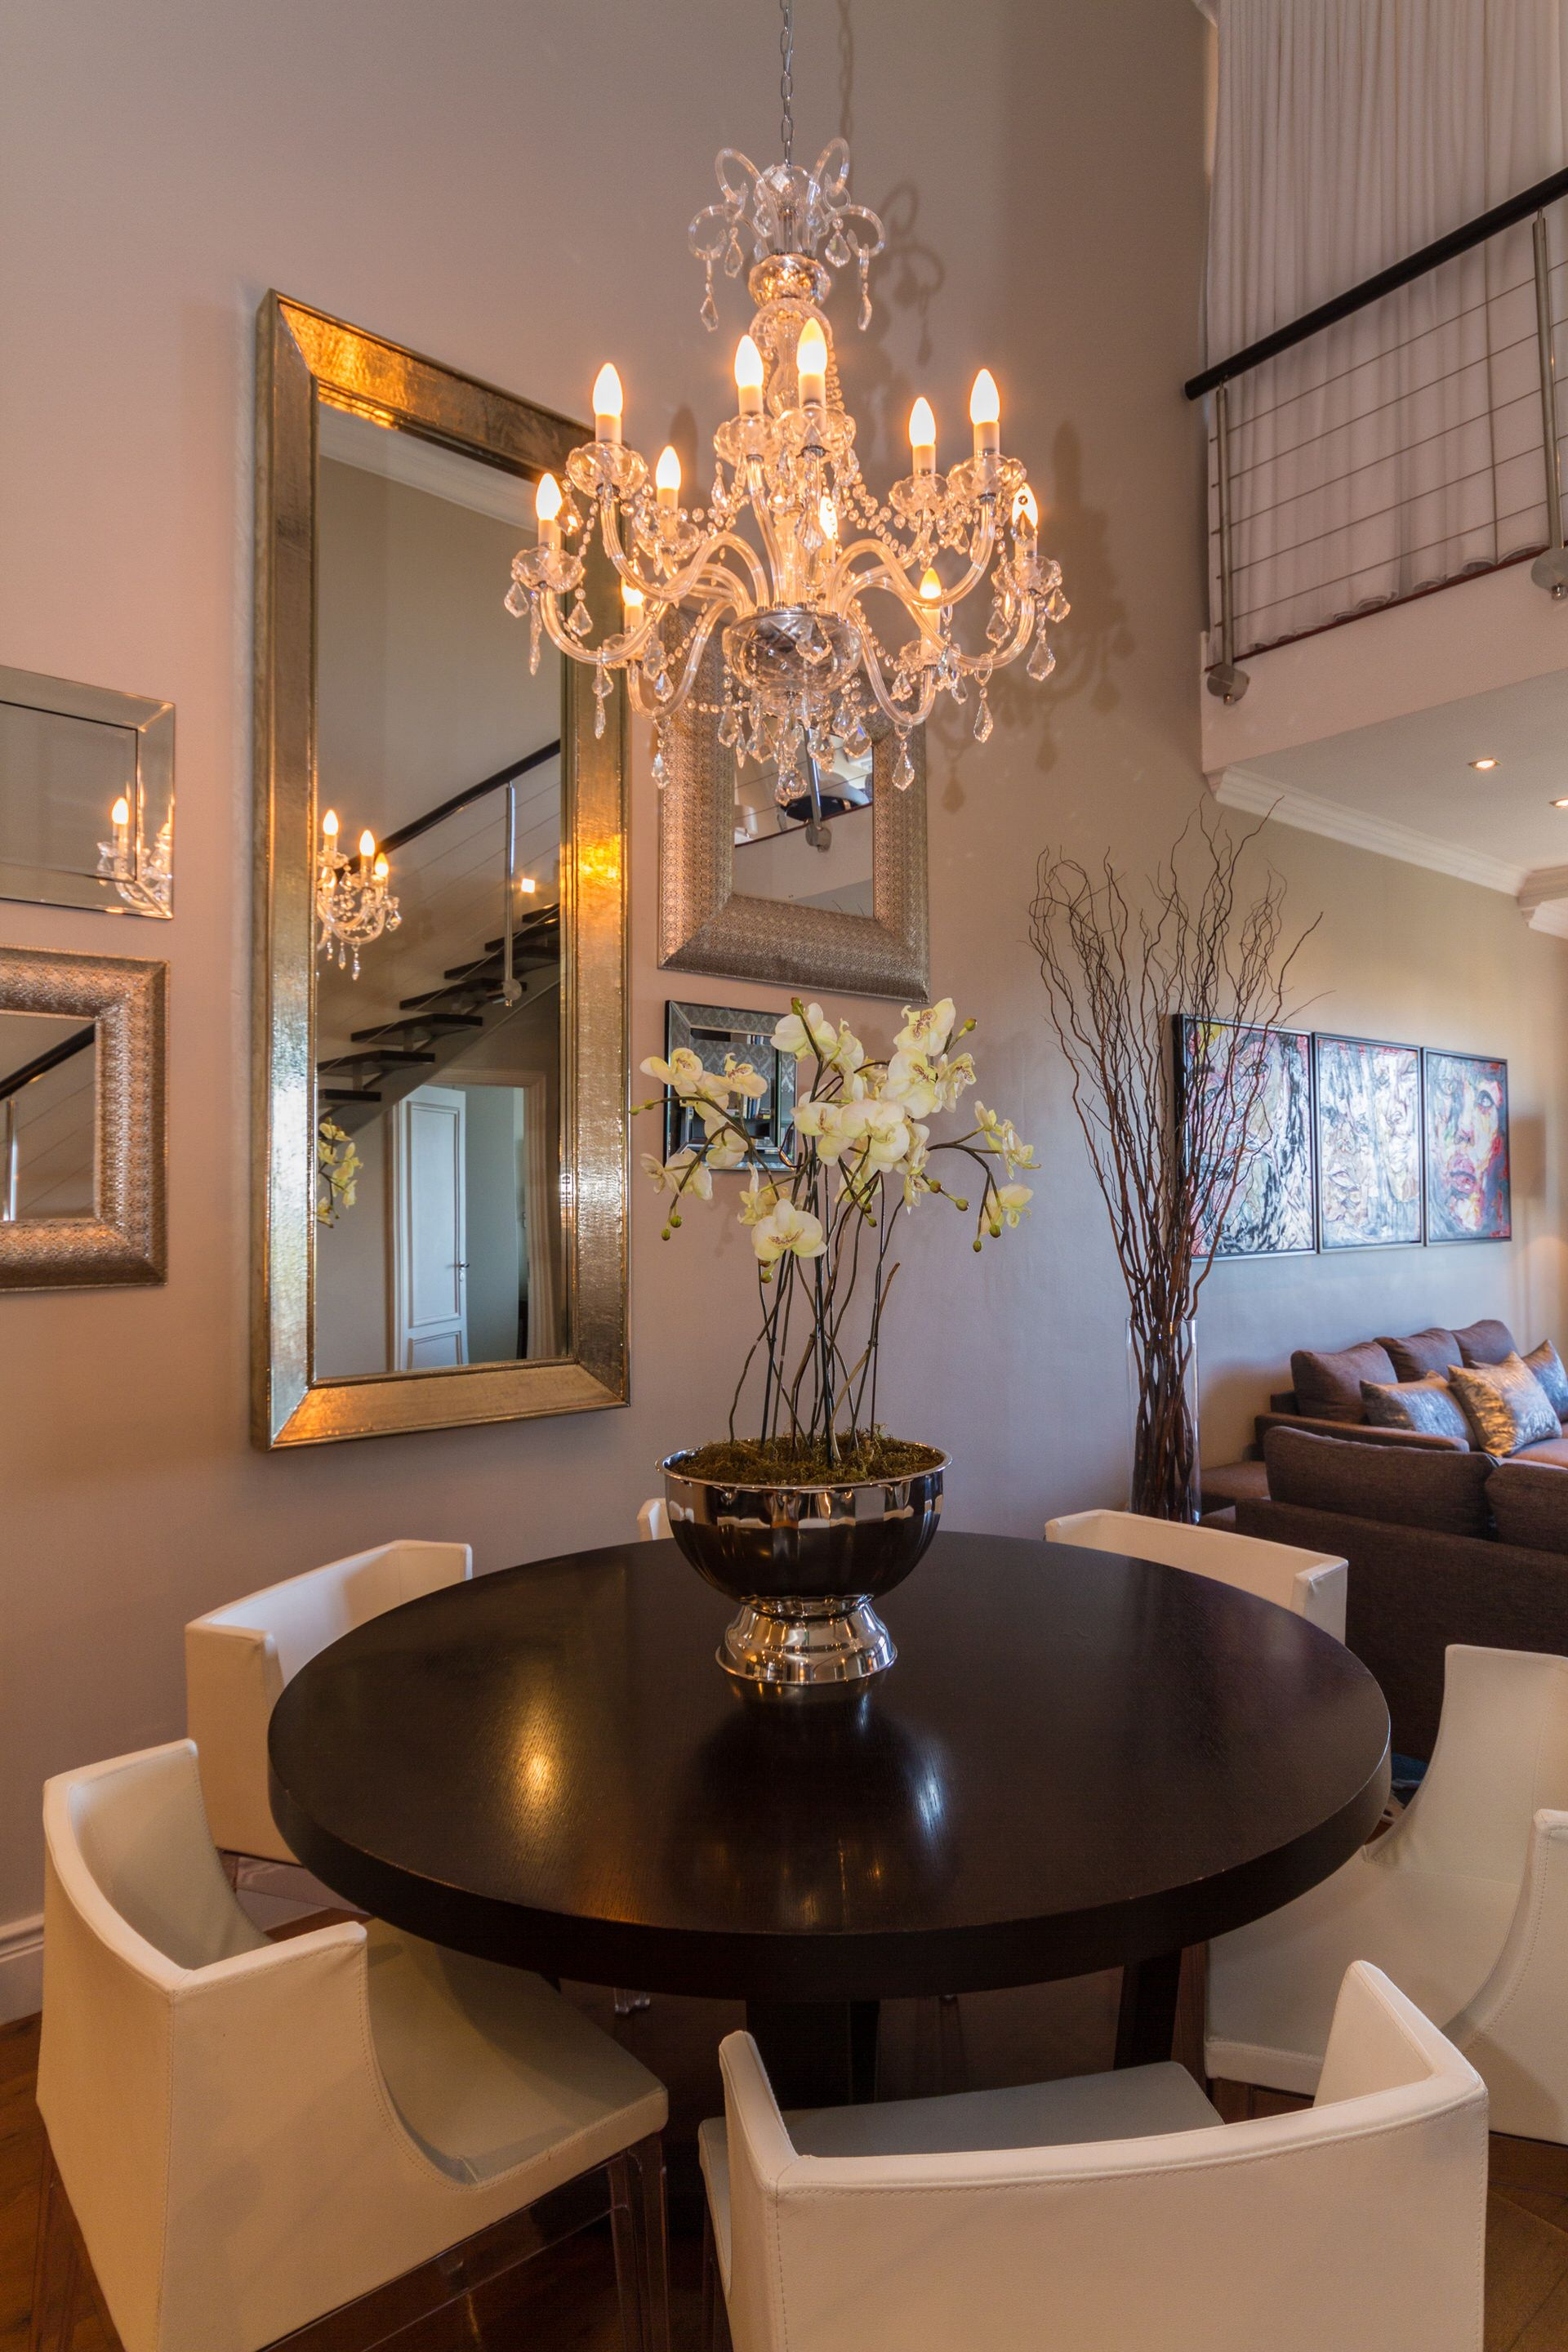 Affordable Self Catering Accomodation Green Point Cape Town South Africa Private Hotel Luxury Apartment Luxury Apartments Apartment Penthouse Apartment